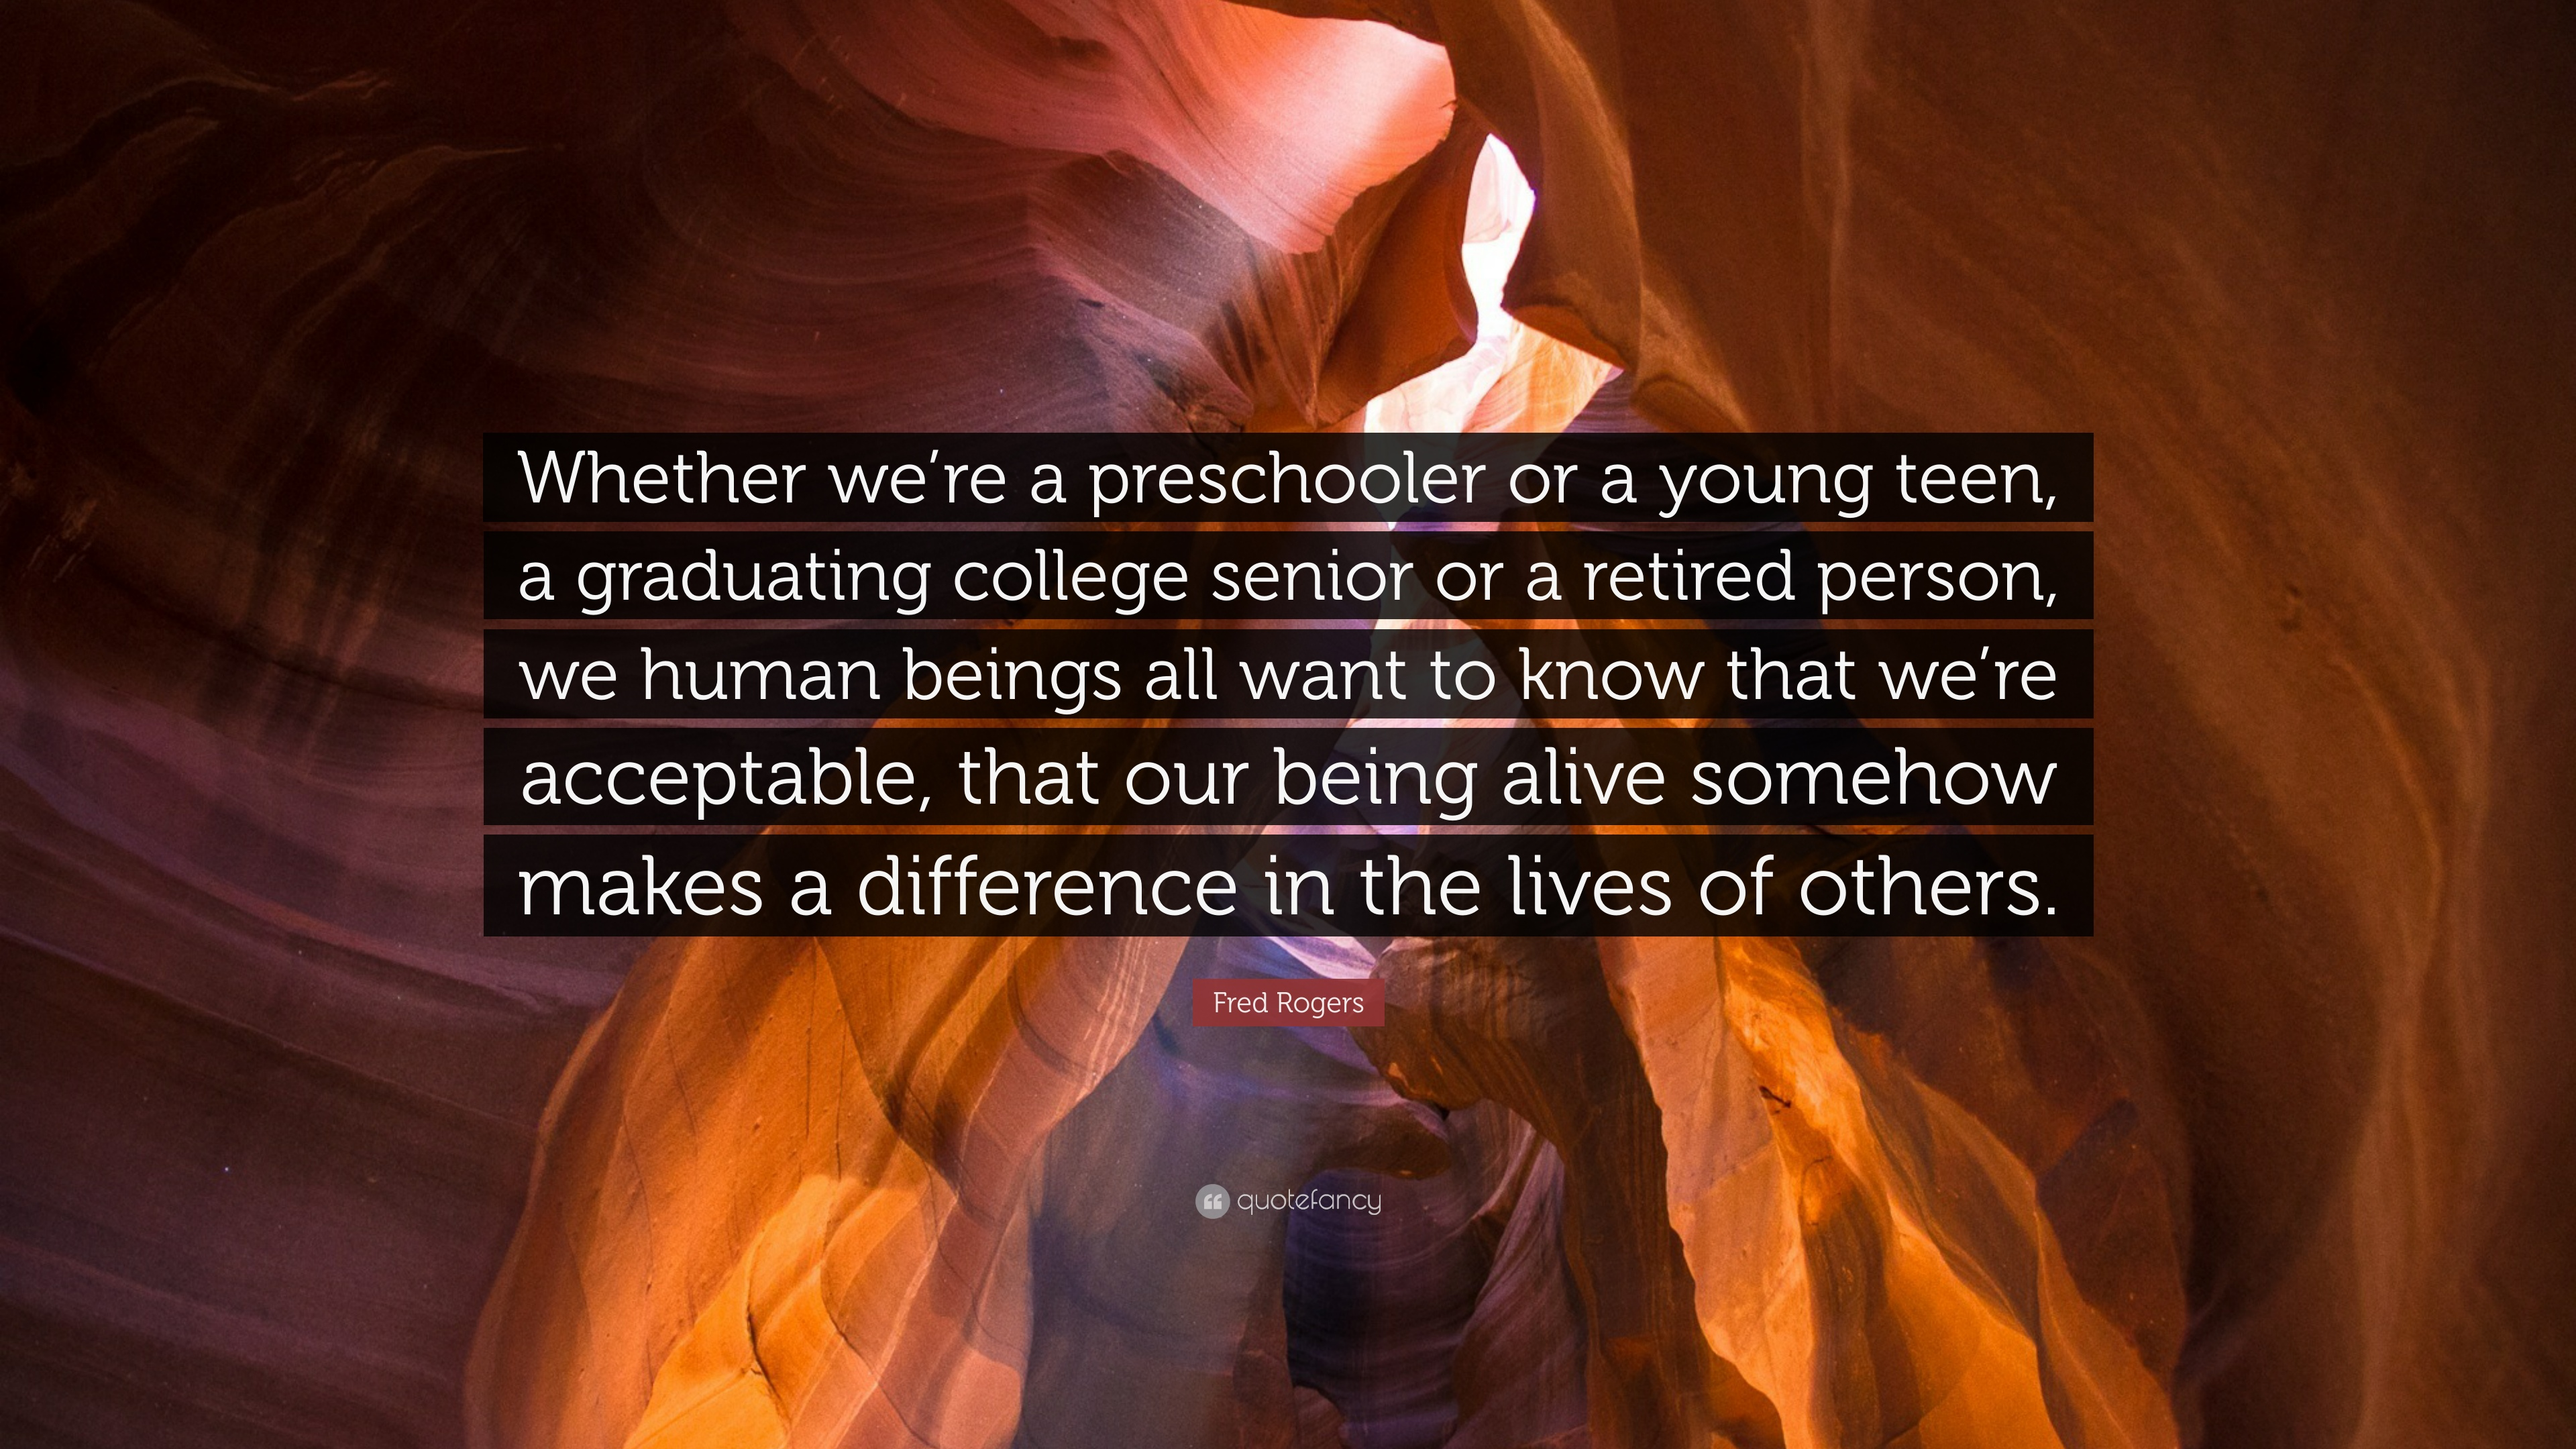 Fred Rogers Quote Whether We Re A Preschooler Or A Young Teen A Graduating College Senior Or A Retired Person We Human Beings All Want T 10 Wallpapers Quotefancy